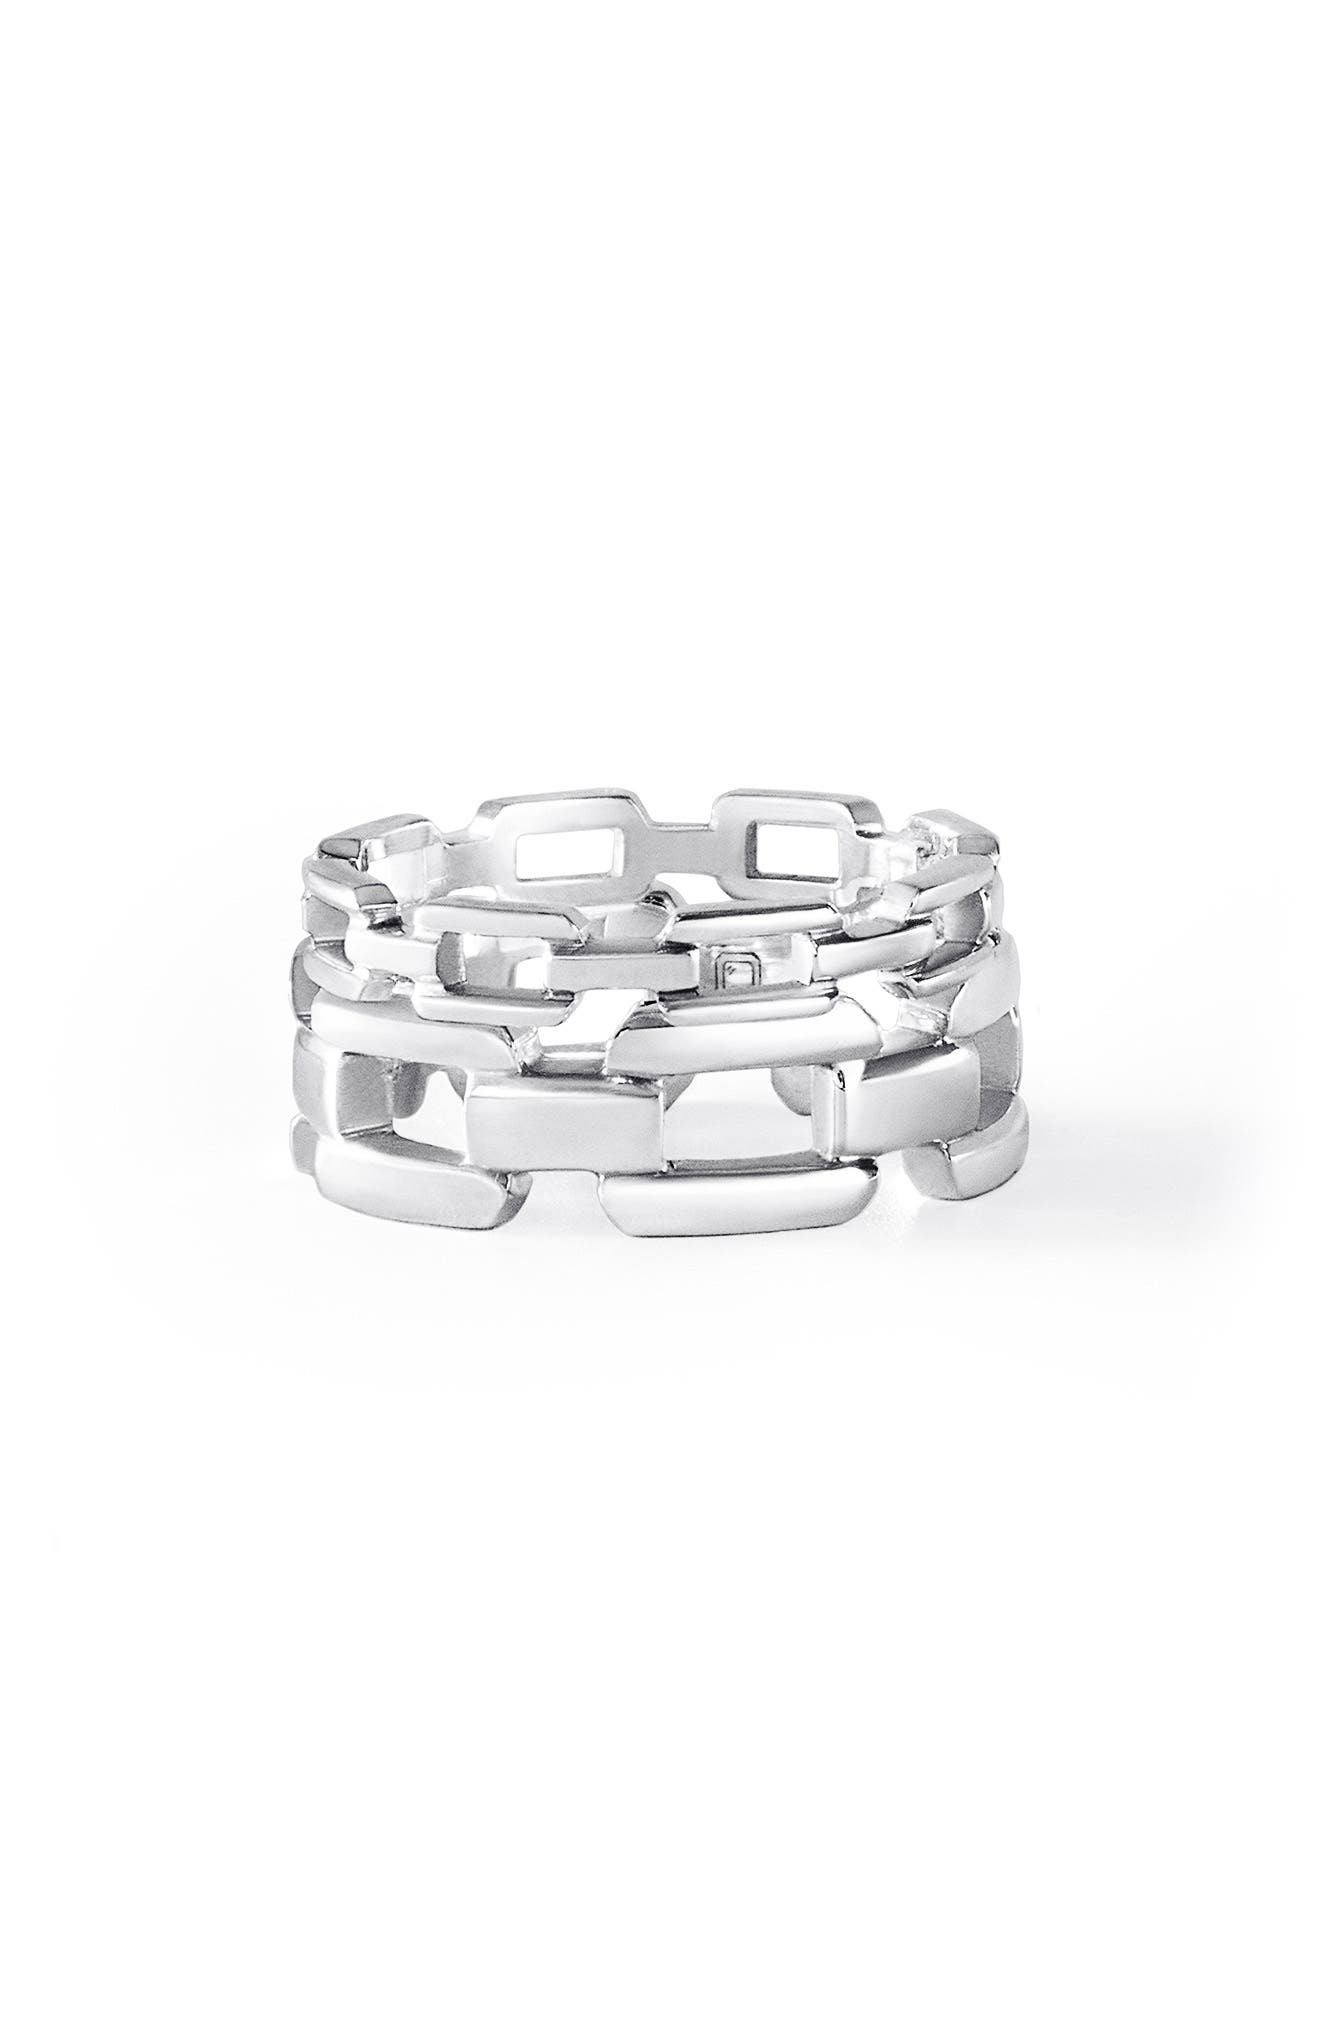 Troy Signature Link Sterling Silver Ring Set